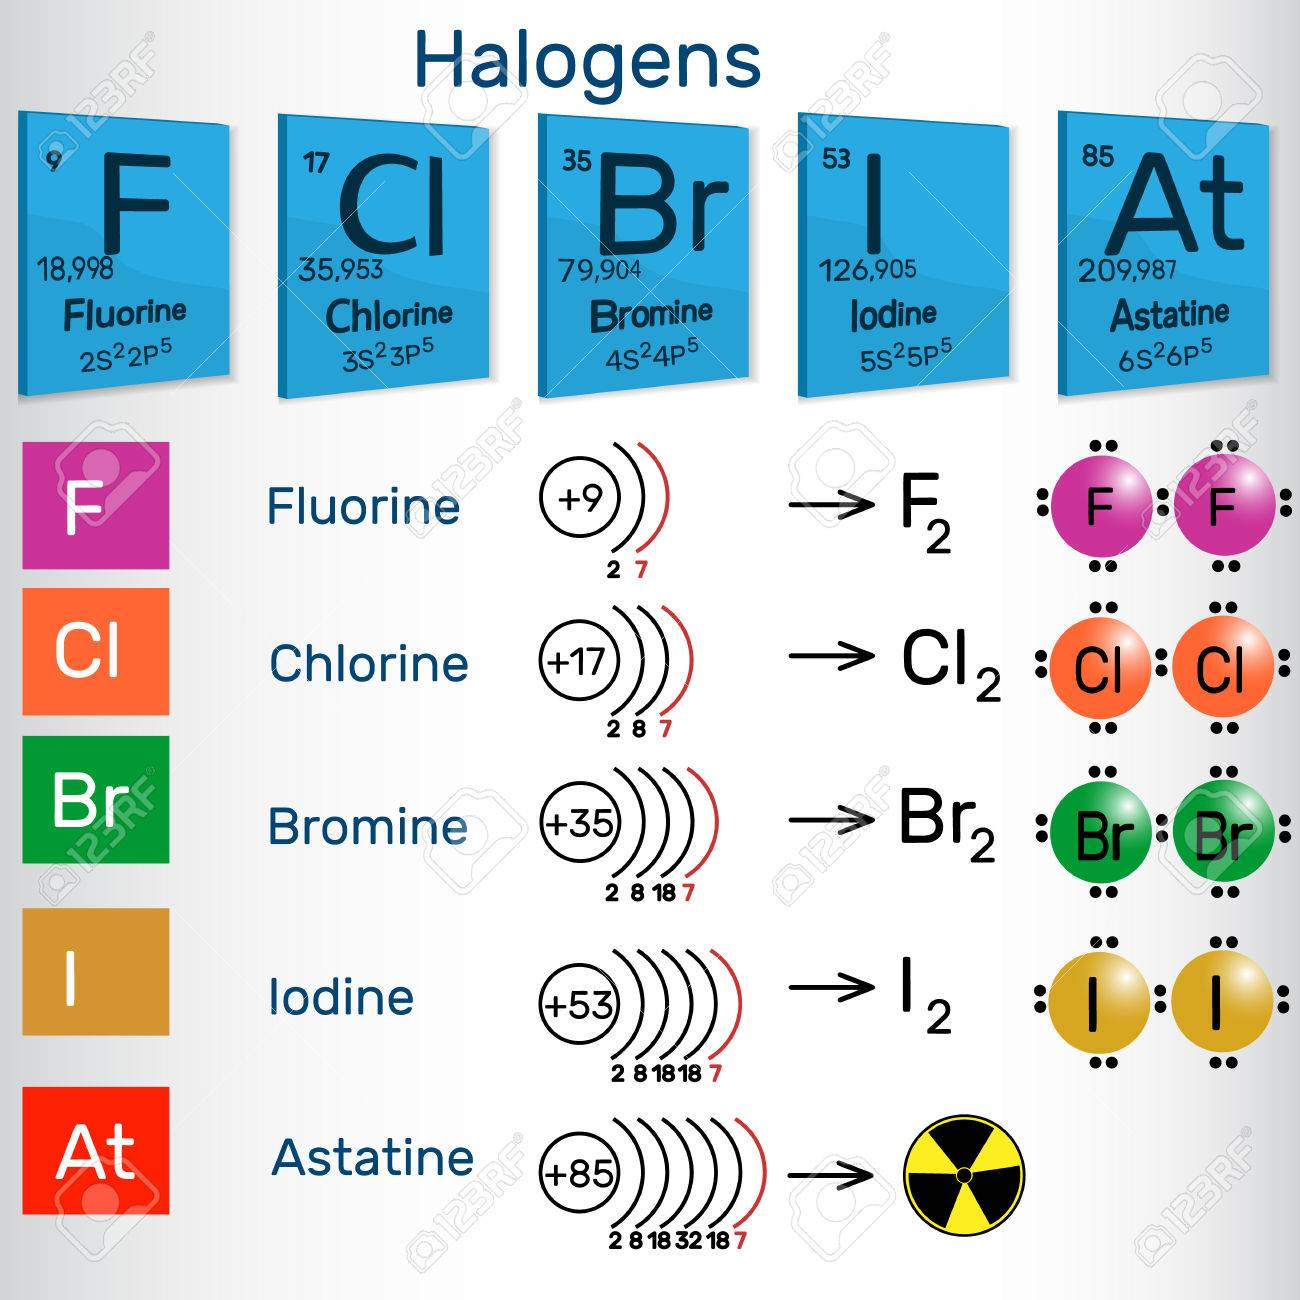 Halogens chemical elements of periodic table vector illustration halogens chemical elements of periodic table vector illustration stock vector 82167668 urtaz Gallery